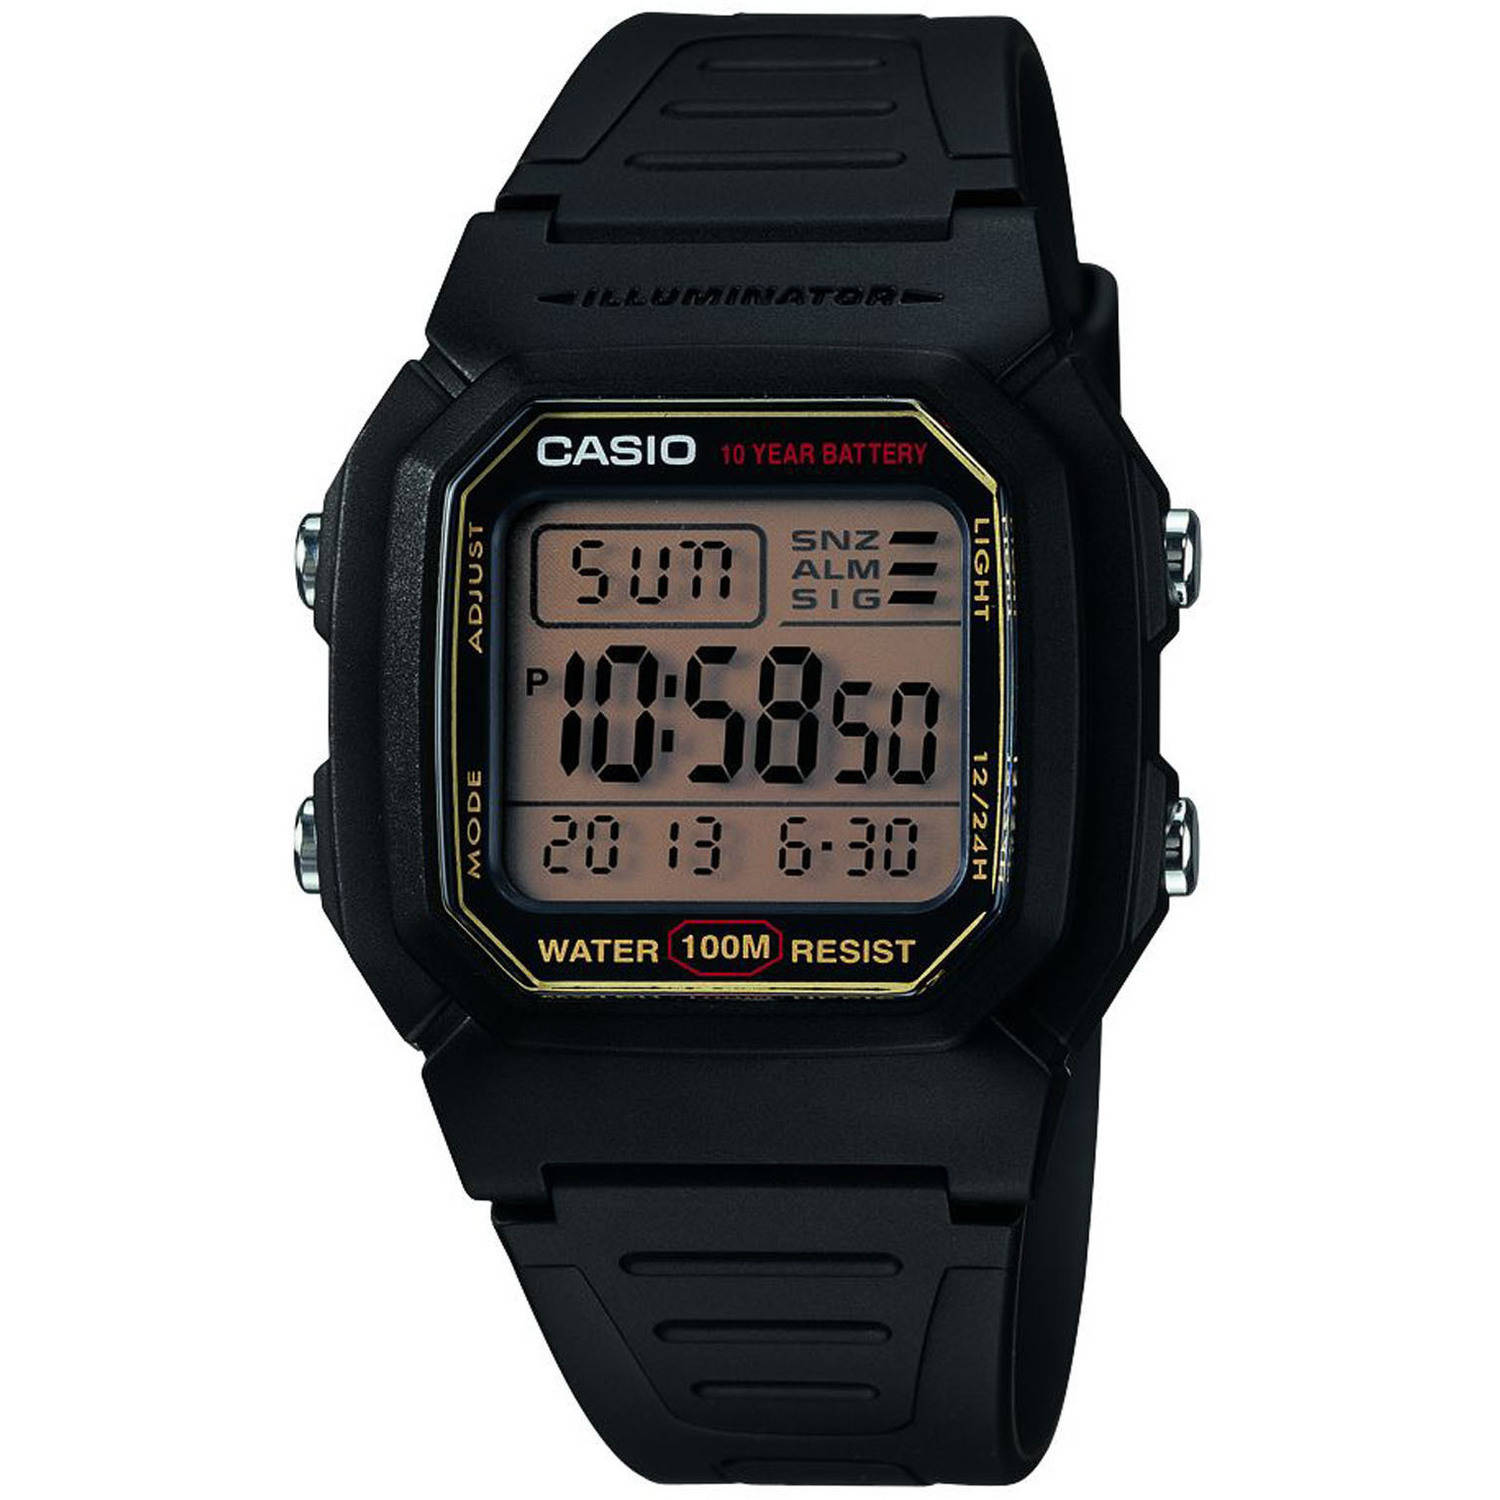 Casio Men's Classic Digital Watch, Black Resin Strap